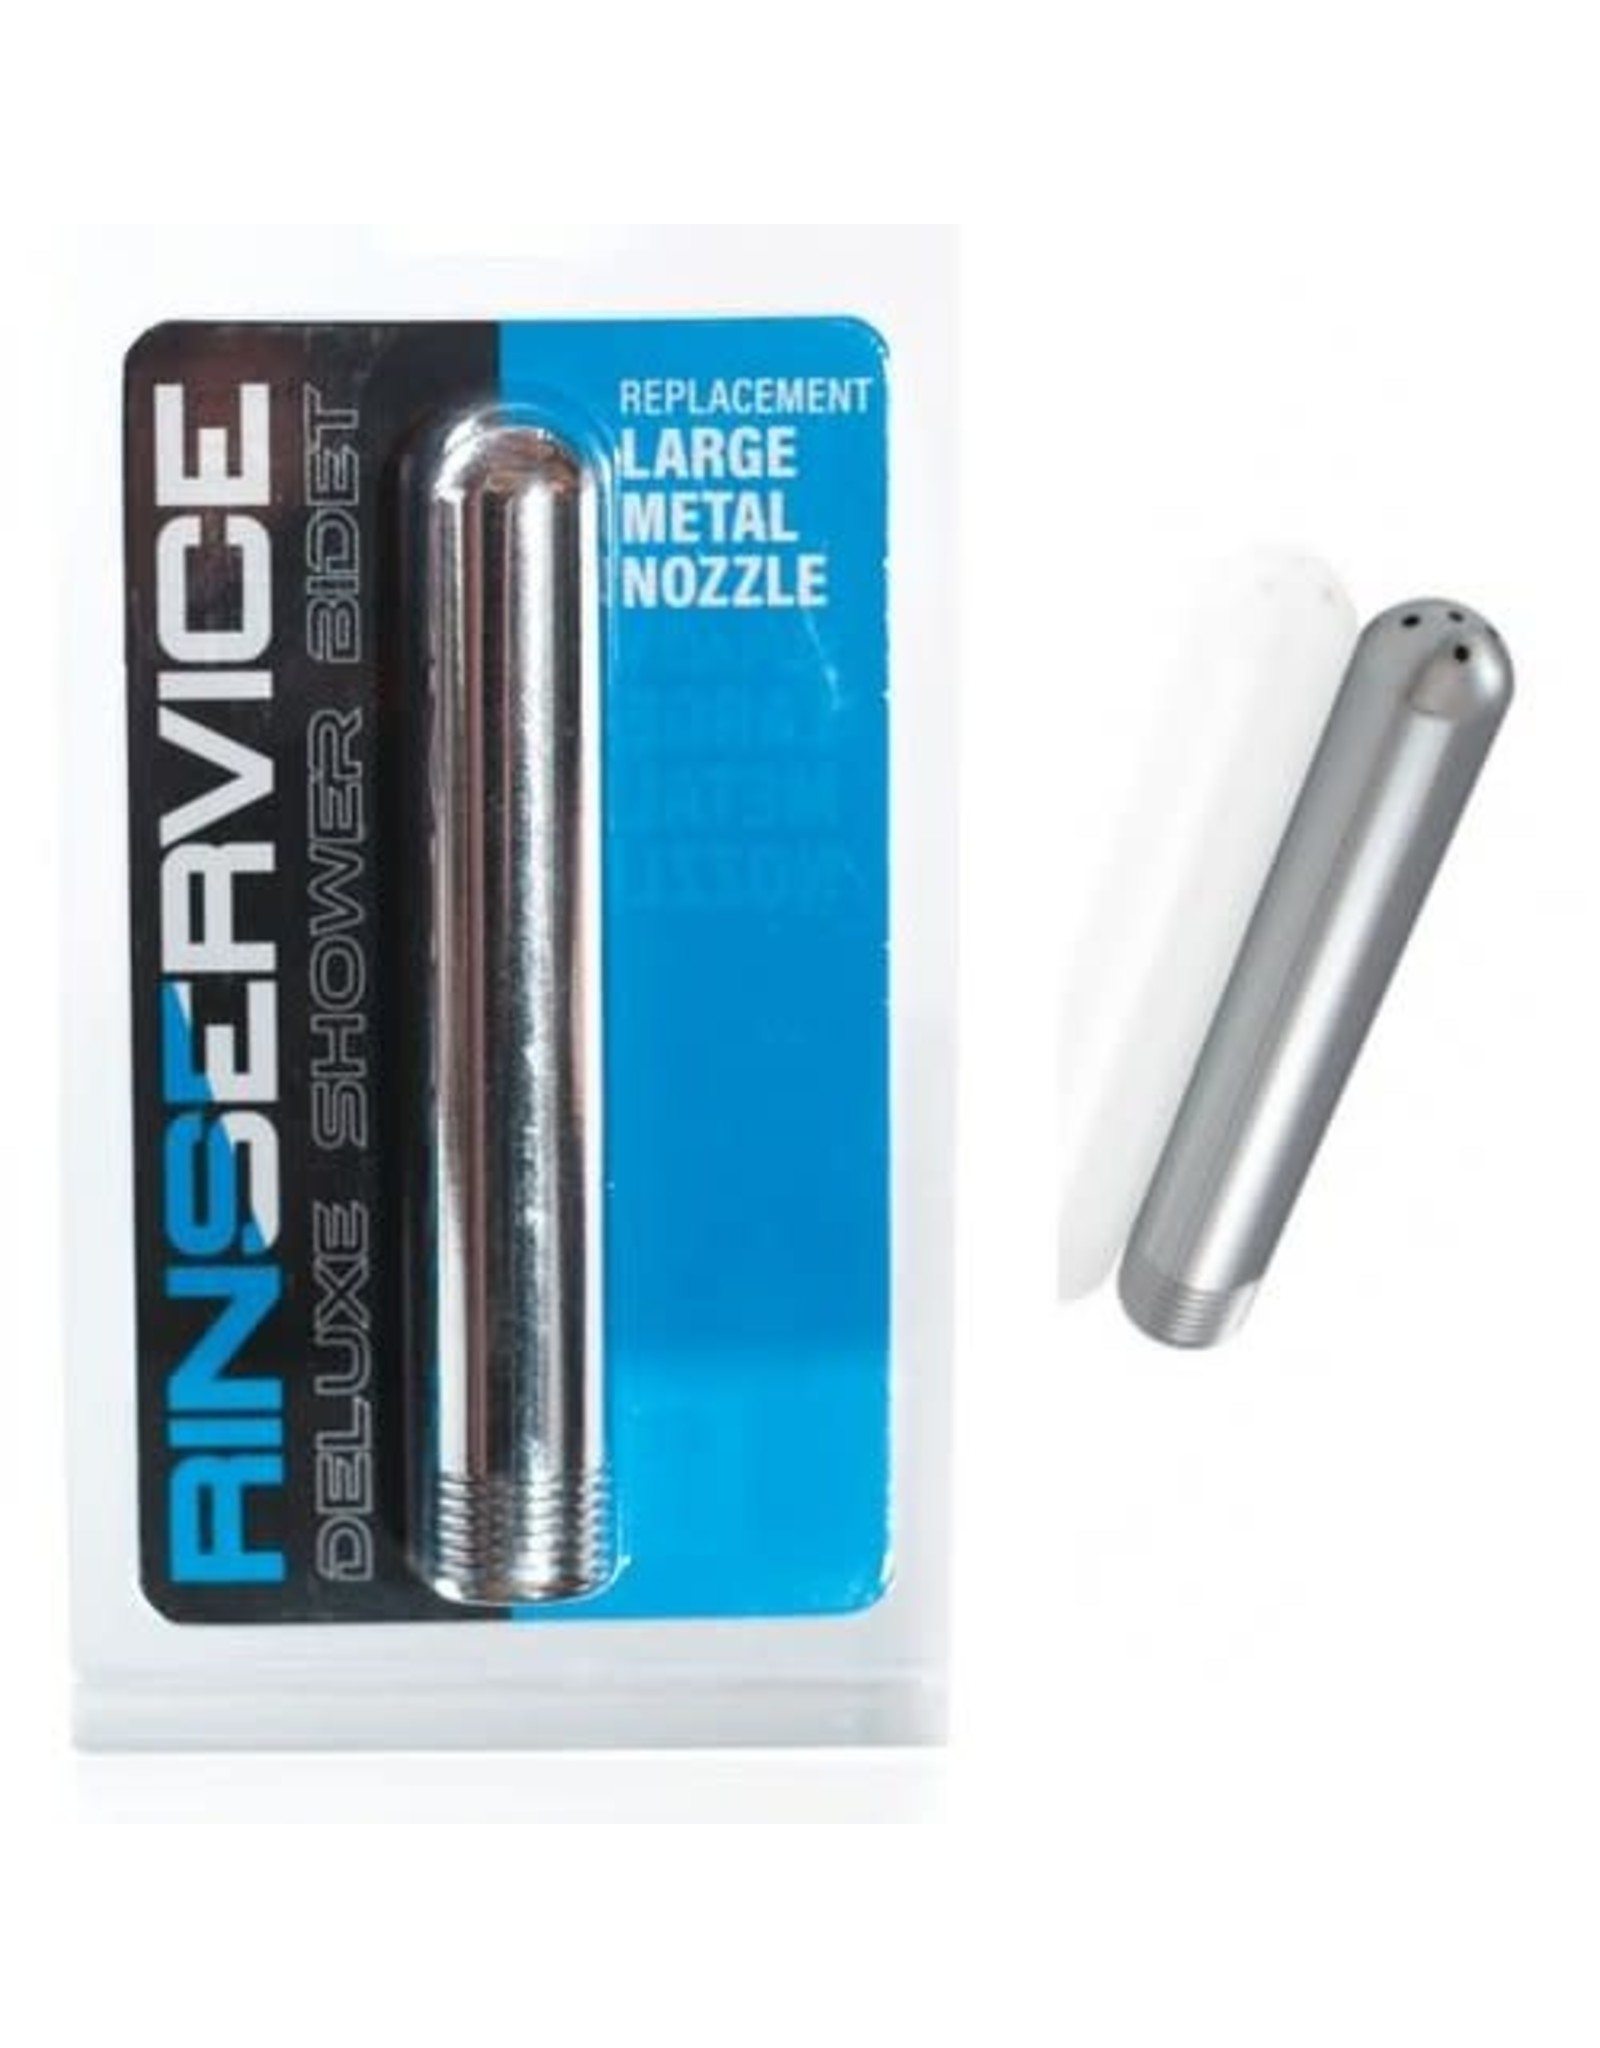 Rinseservice RinseService Douche Nozzle